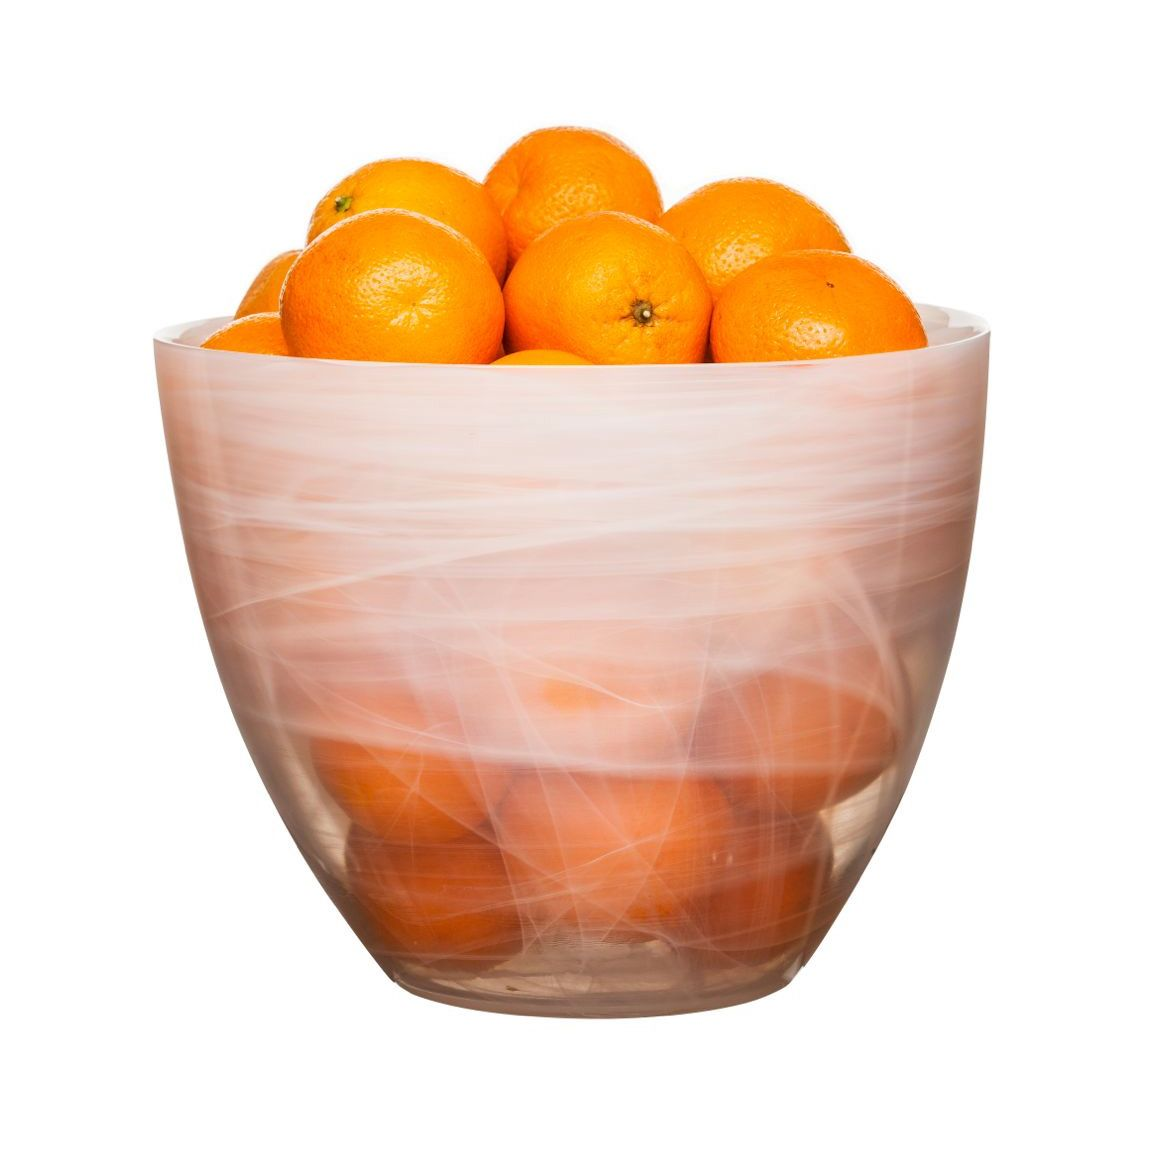 Display your fruits and veggies in this unique, artistic bowl. Unlike solid color bowls, this piece features a spirit-like translucent quality with a subtlety that accents with true character. We love ...  Find the White Goddess Bowl, as seen in the Love to Cook Collection at http://dotandbo.com/collections/love-to-cook?utm_source=pinterest&utm_medium=organic&db_sku=103173